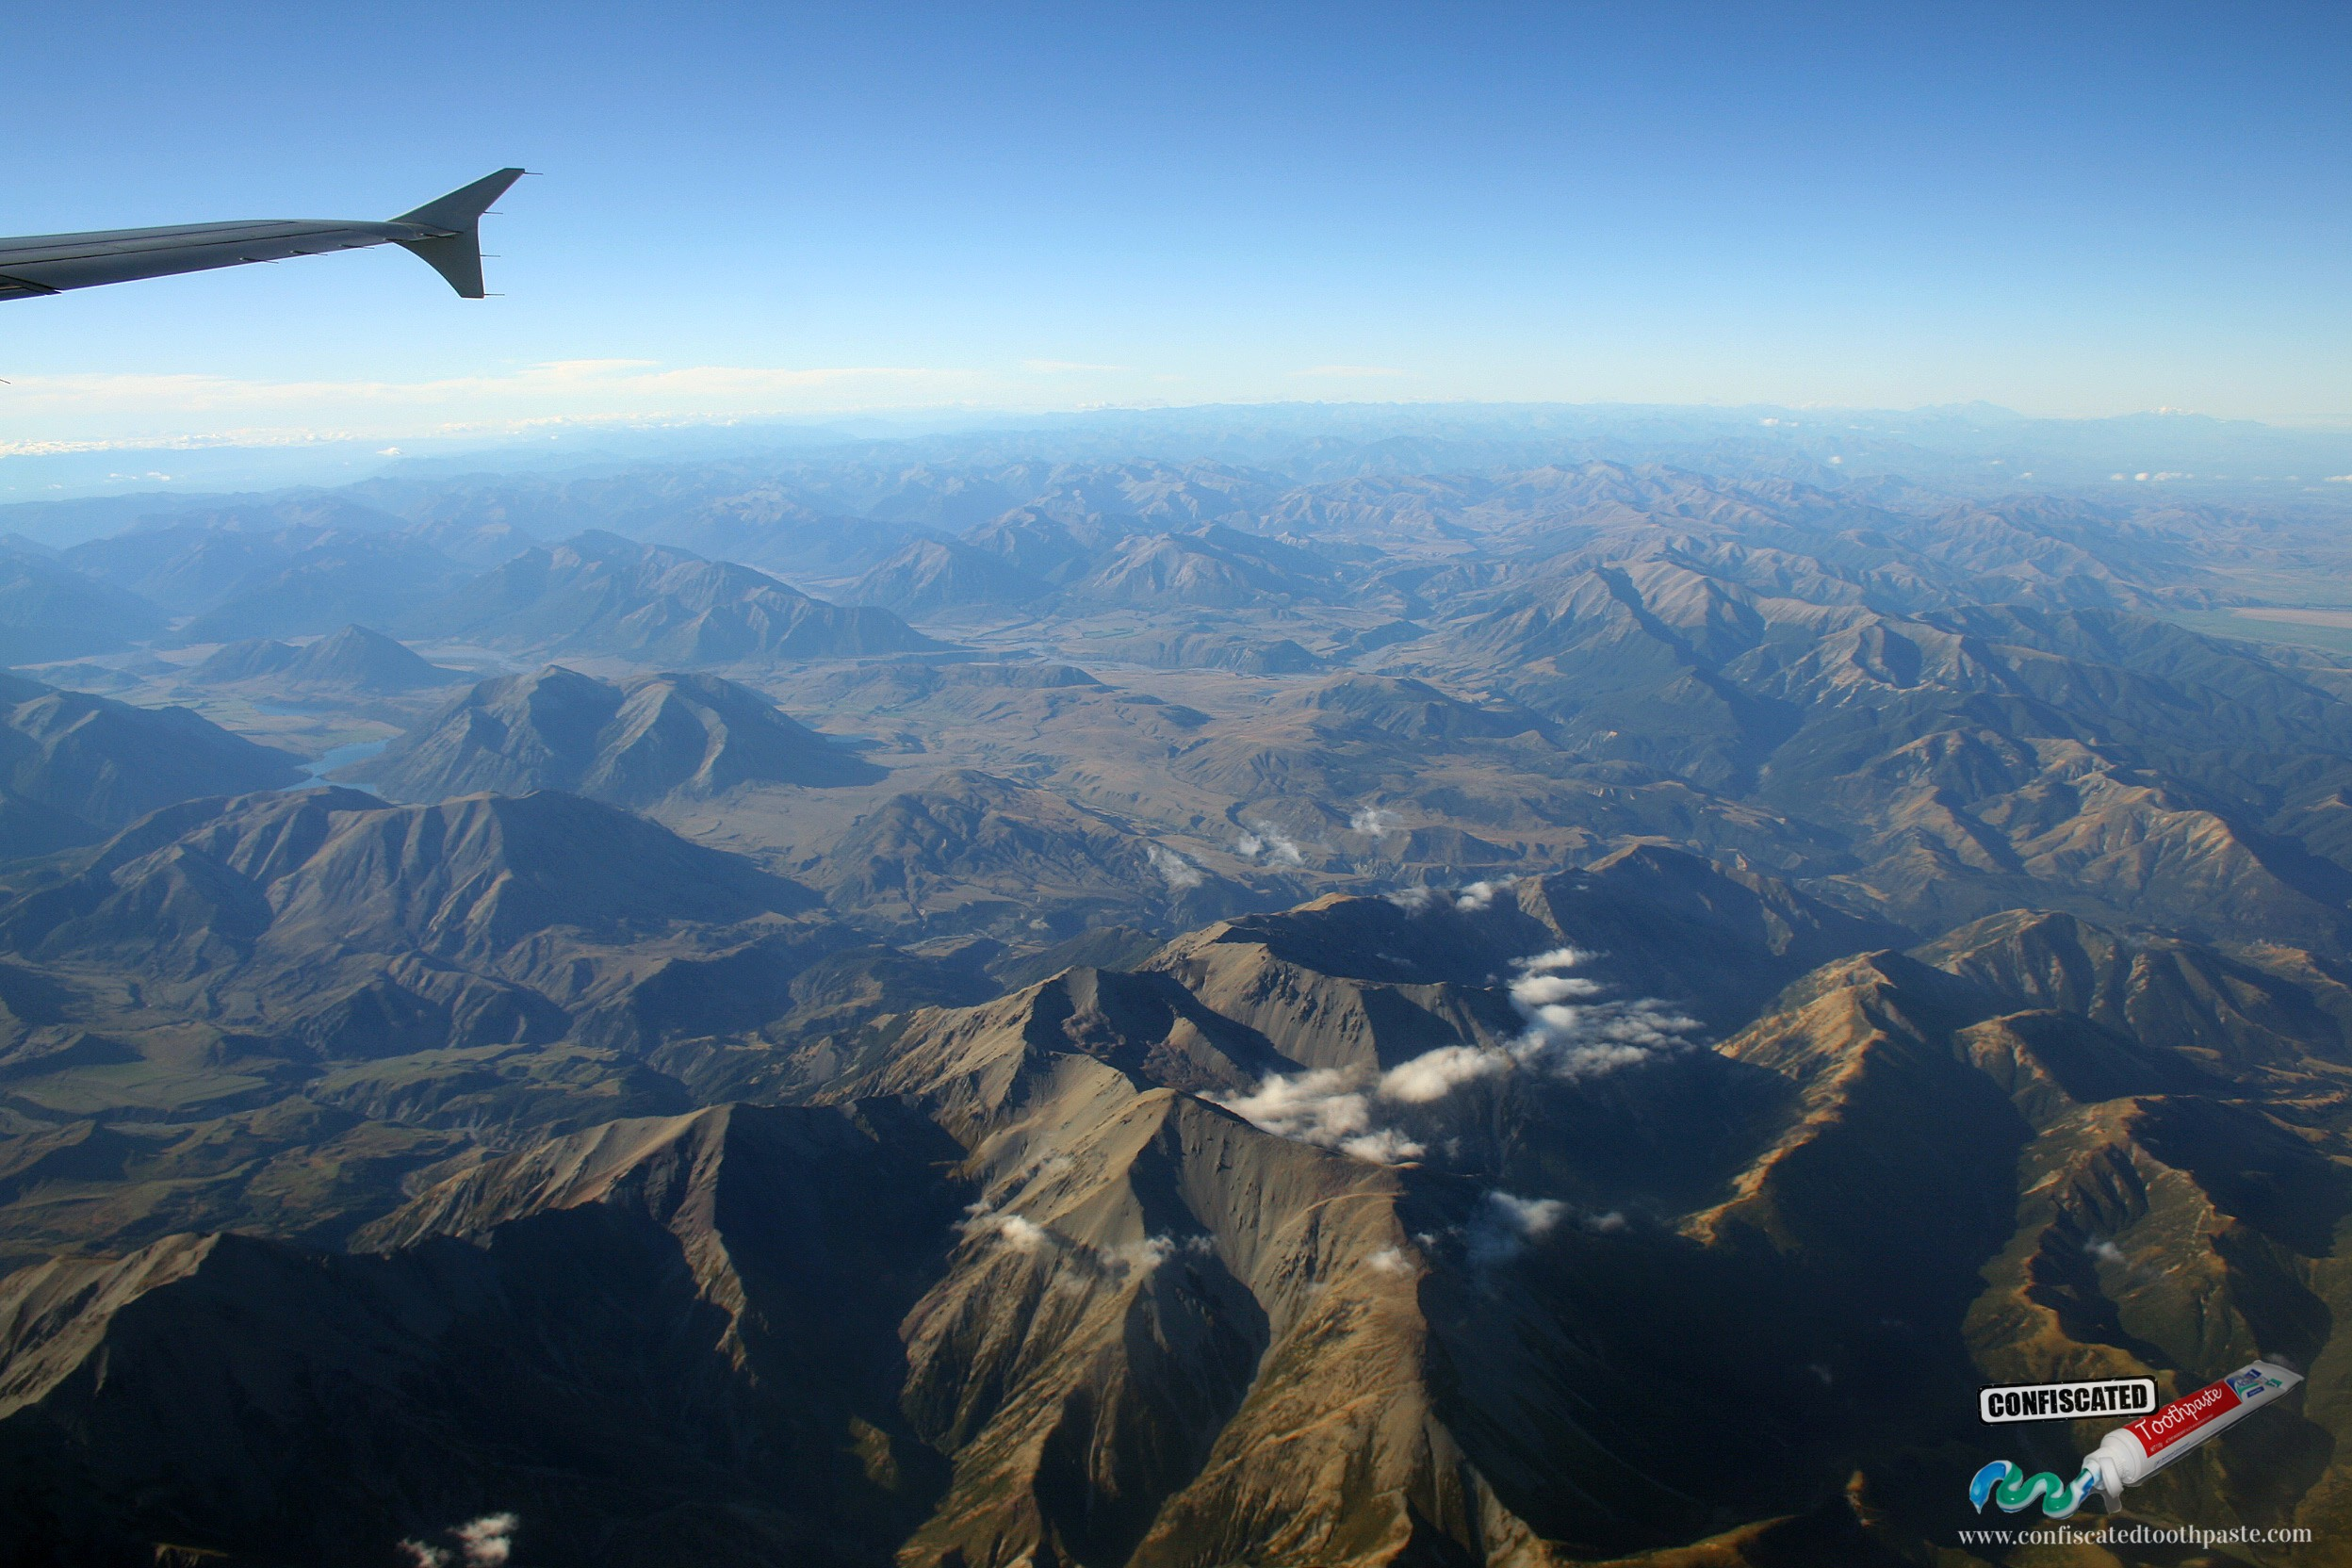 Flying over New Zealand's South Island